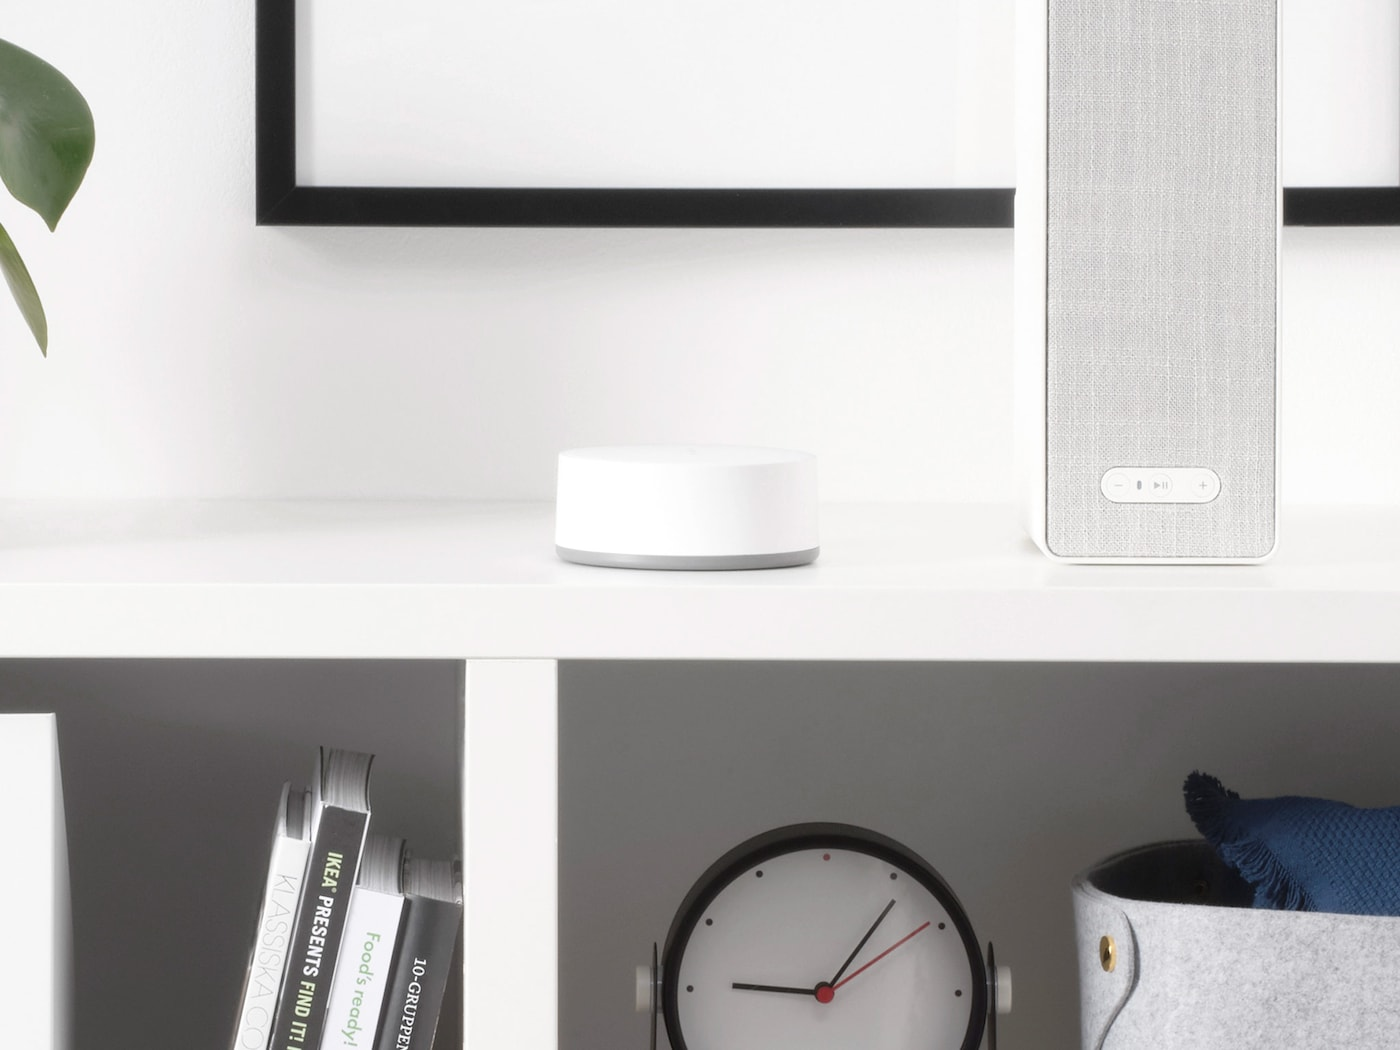 Link to 'FAQ & troubleshoot IKEA Home smart app and gateway' - image of TRÅDFRI gateway shown on a decorated white bookcase.